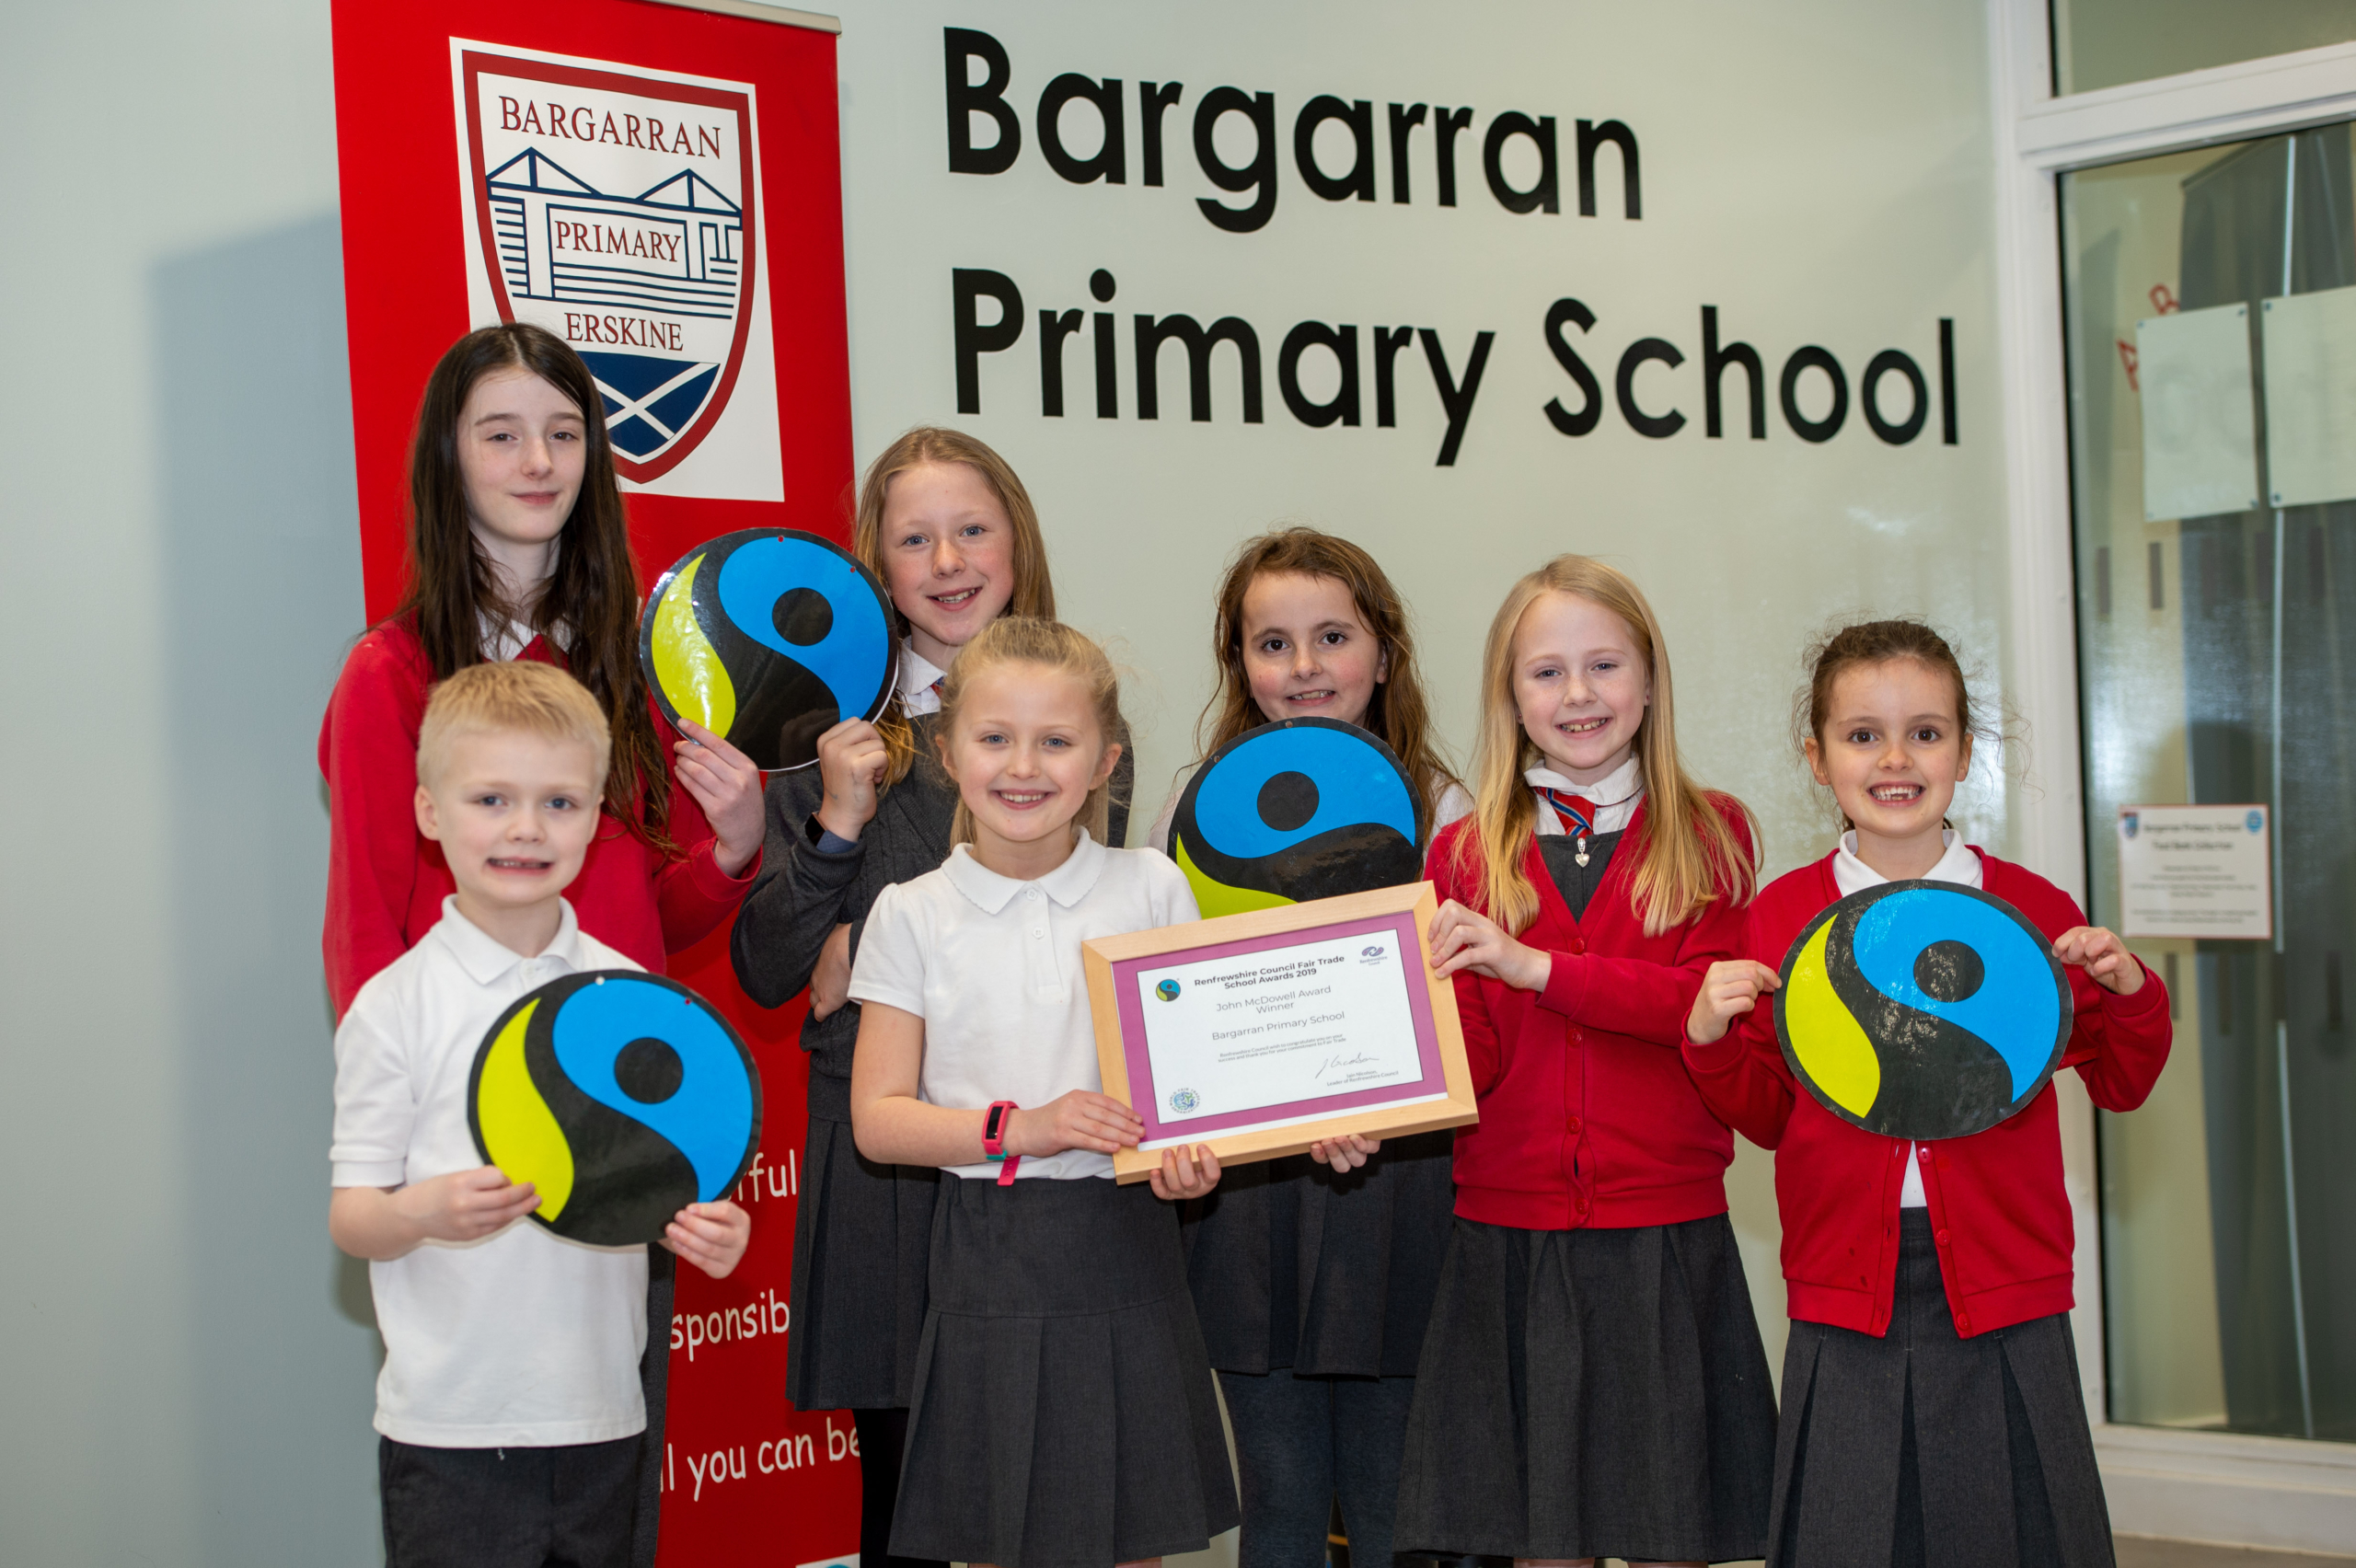 2. Bargarran Primary pupils with their award